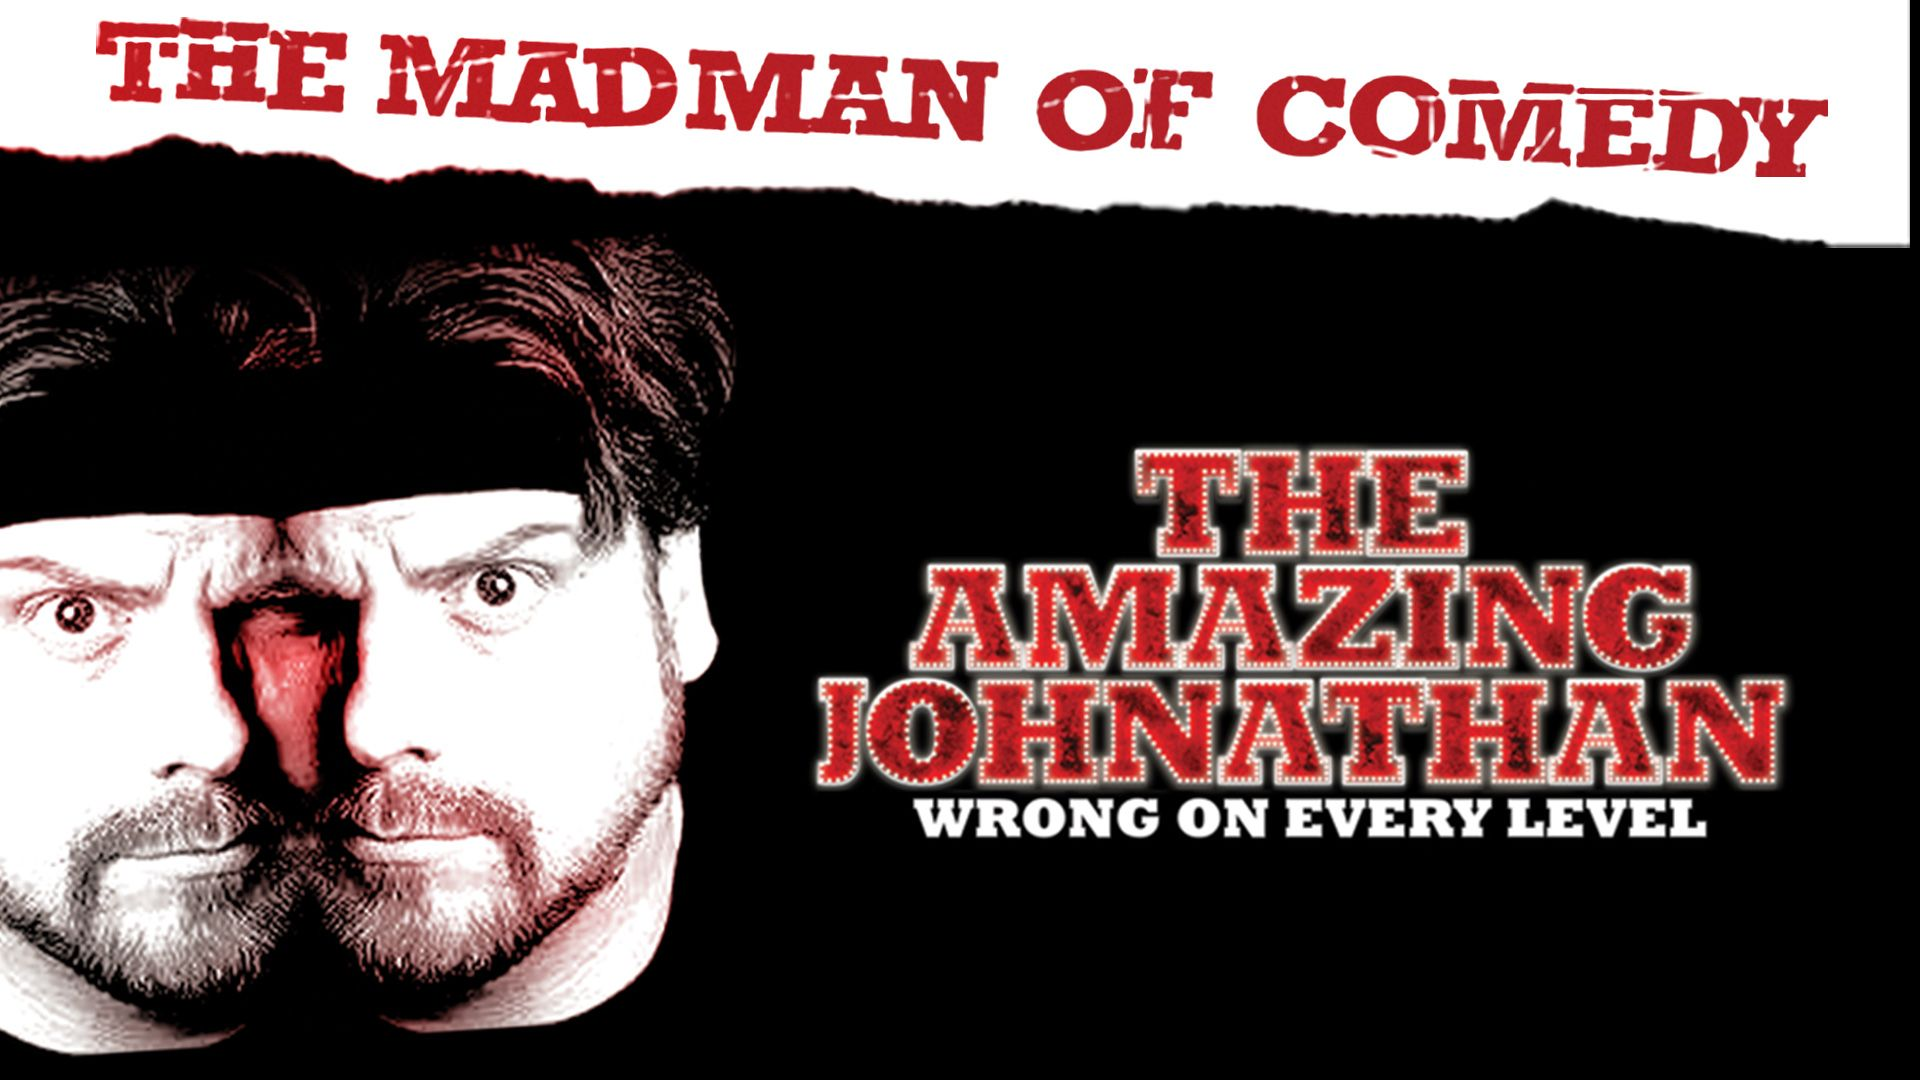 Amazing johnathan wrong on every level download